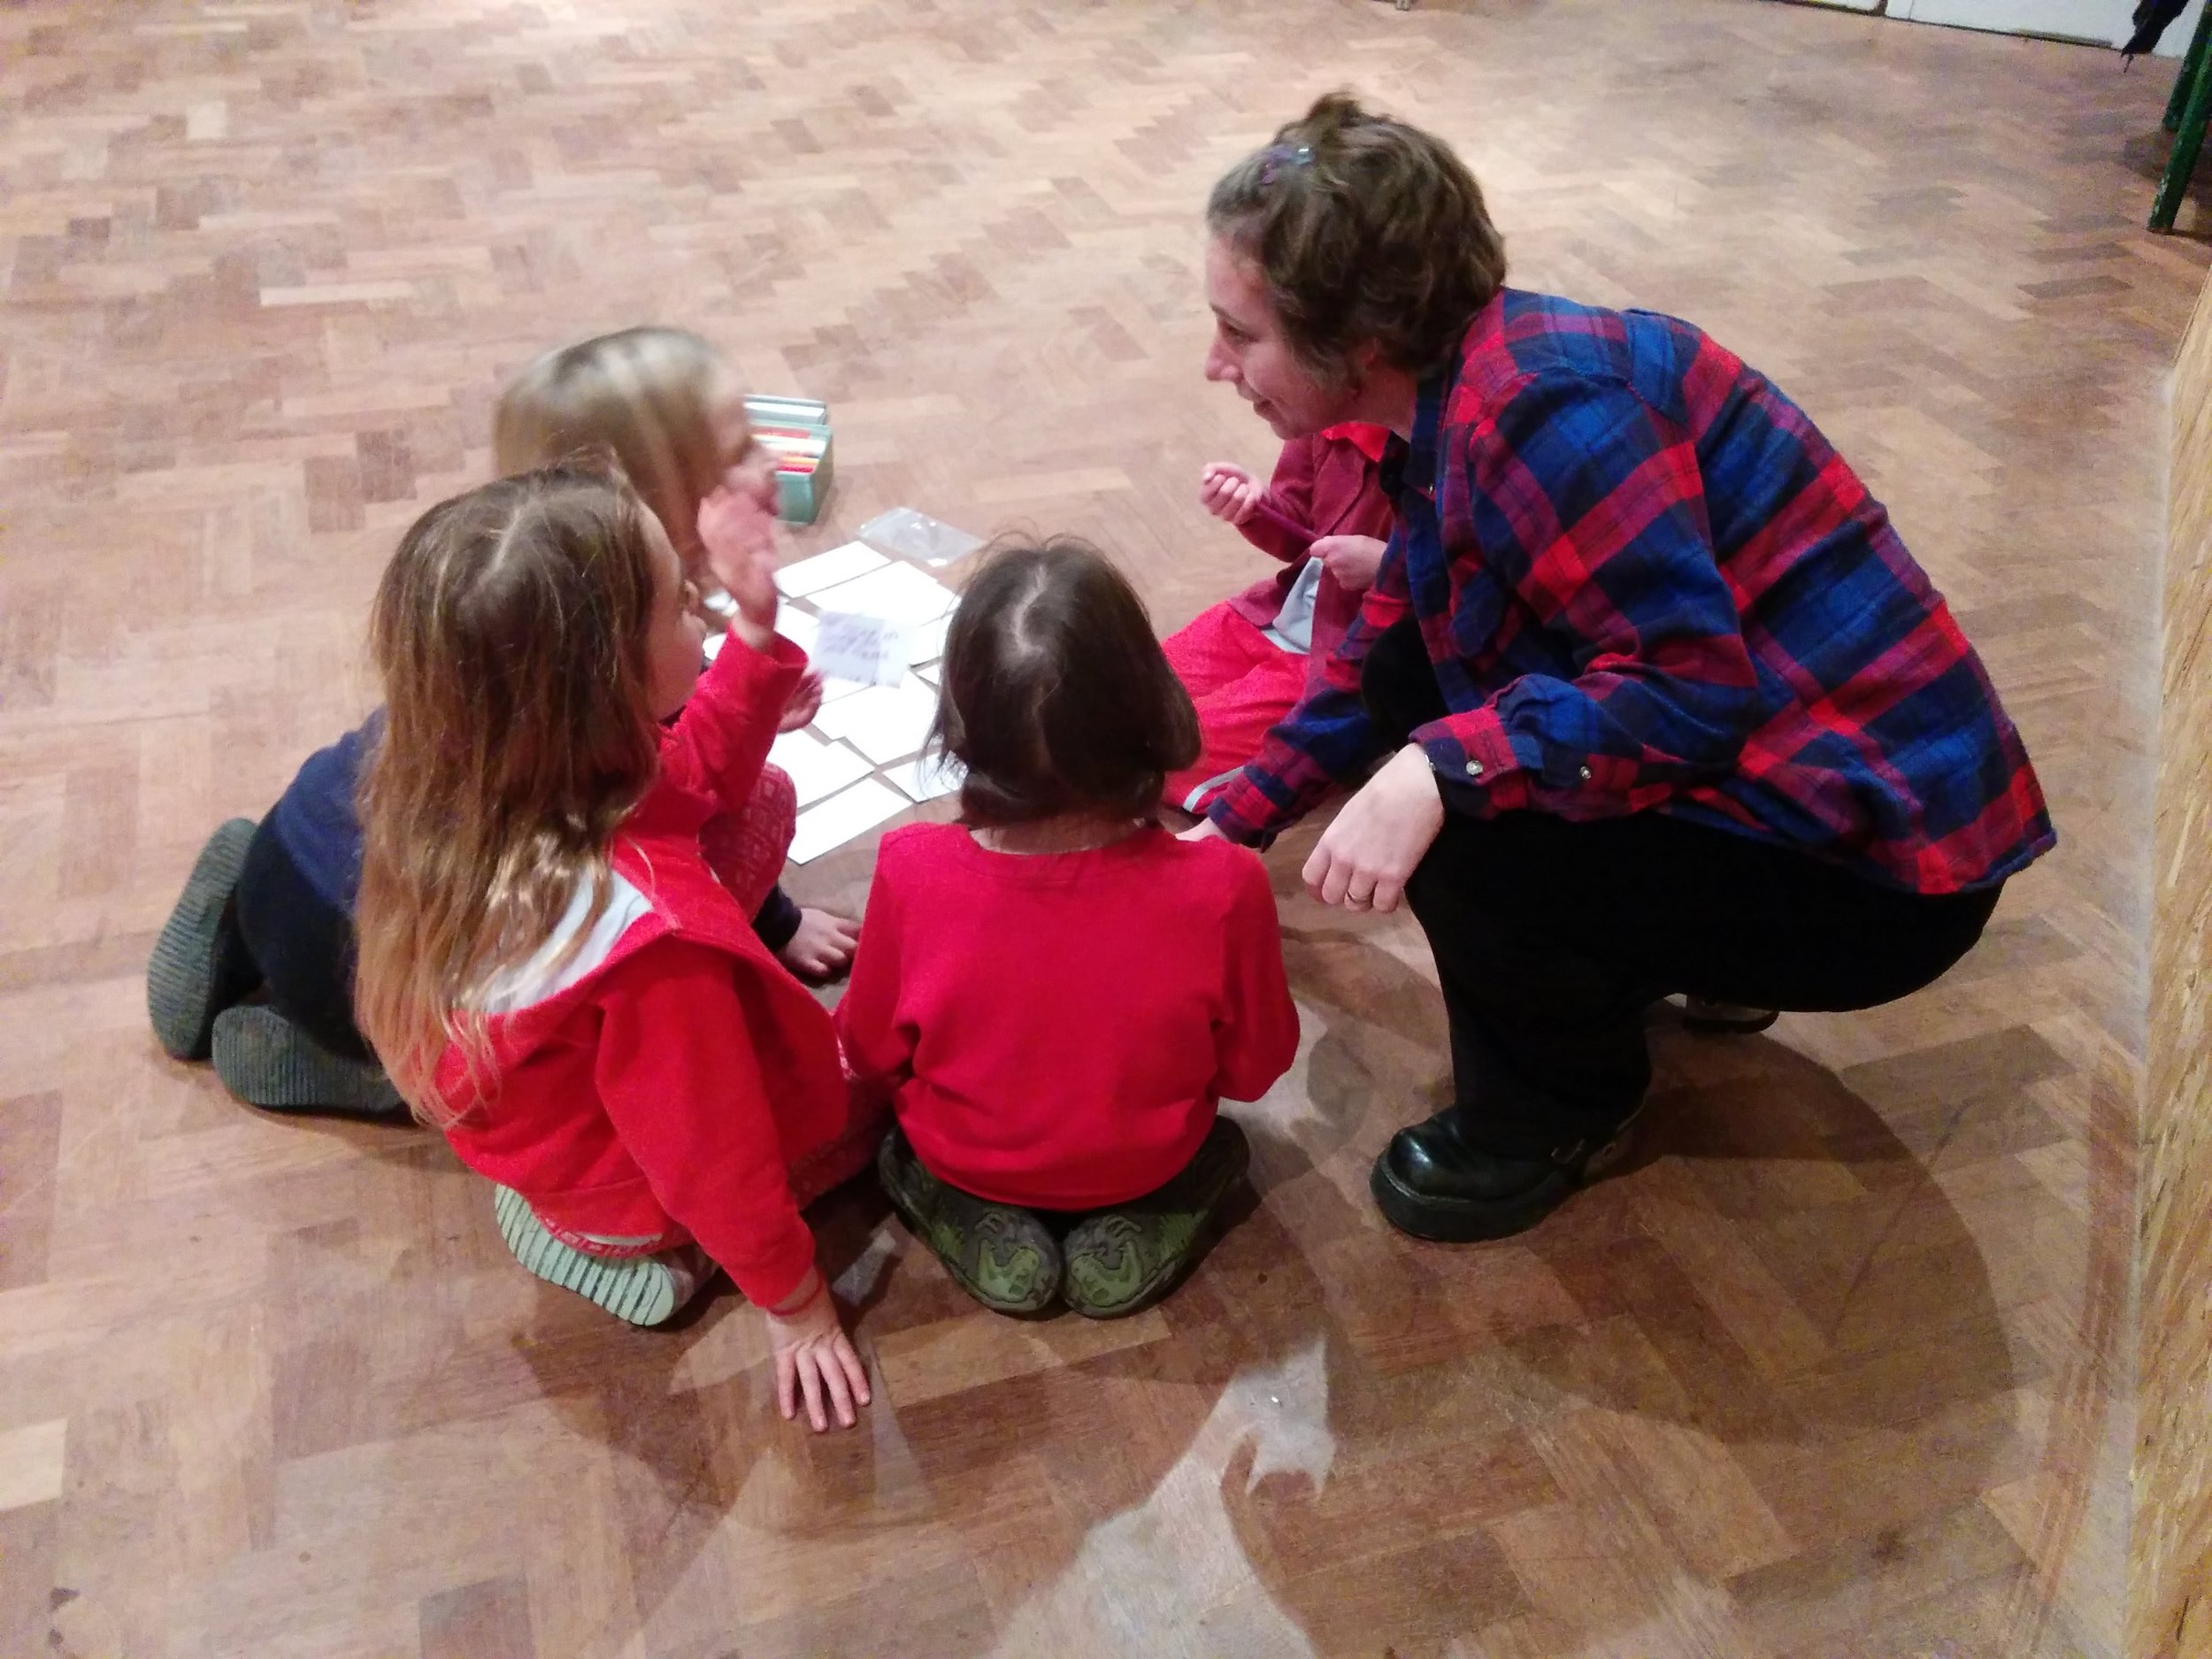 Running a workshop for young girls on self esteem